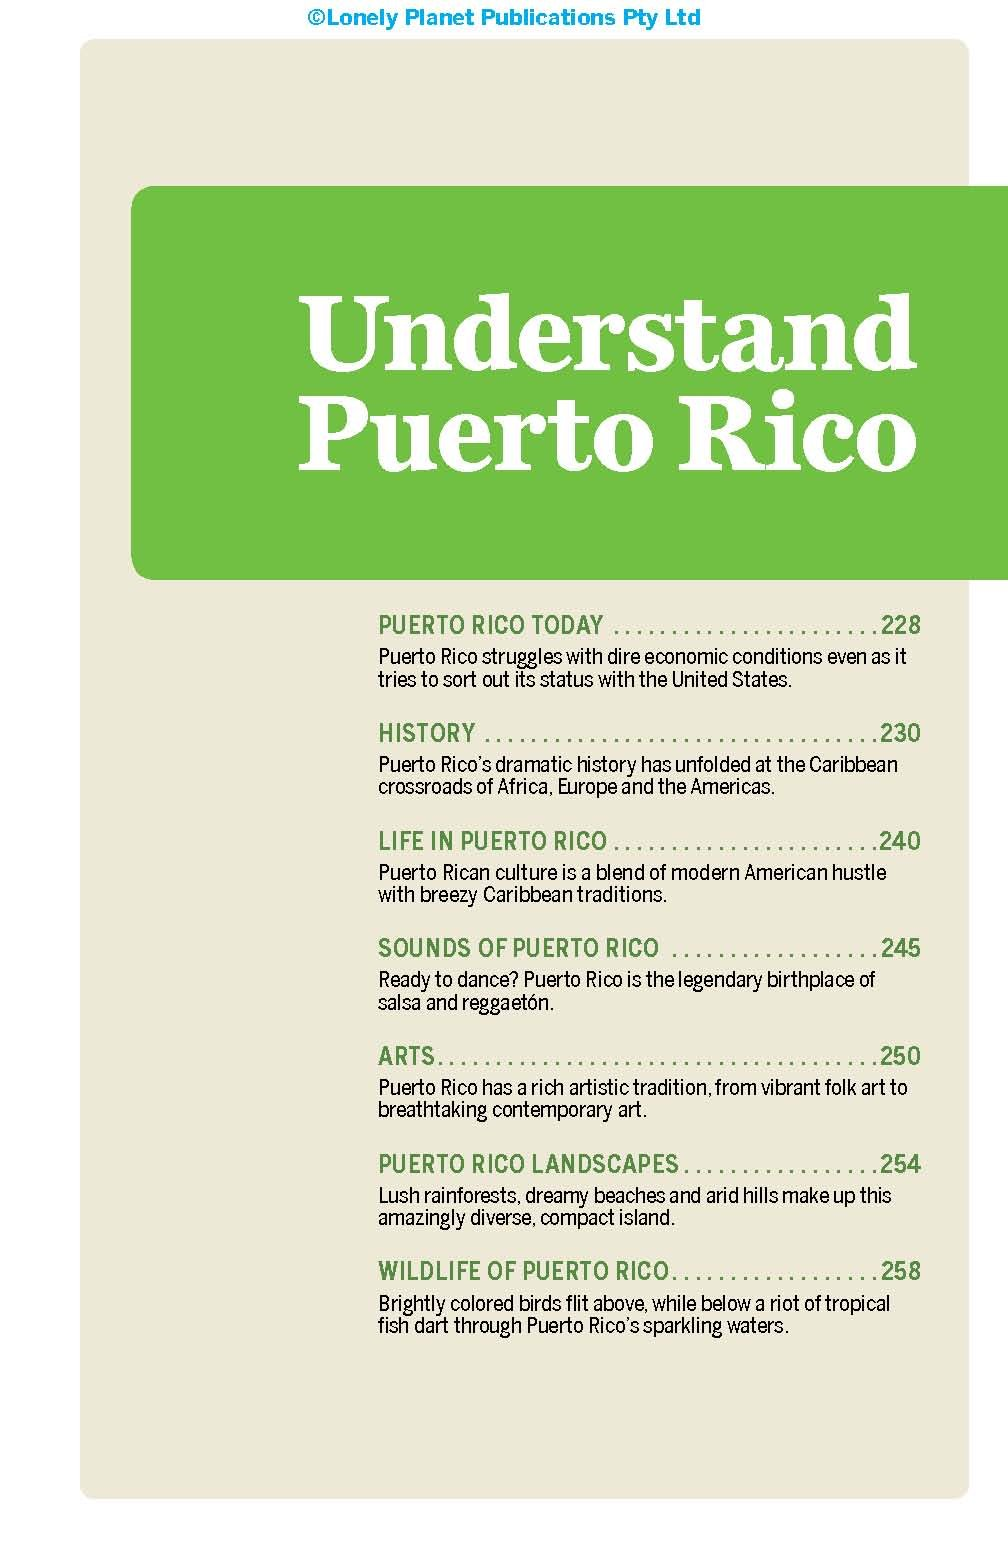 Lonely Planet Puerto Rico (Travel Guide): Lonely Planet, Liza Prado, Luke  Waterson: 9781786571427: Amazon.com: Books